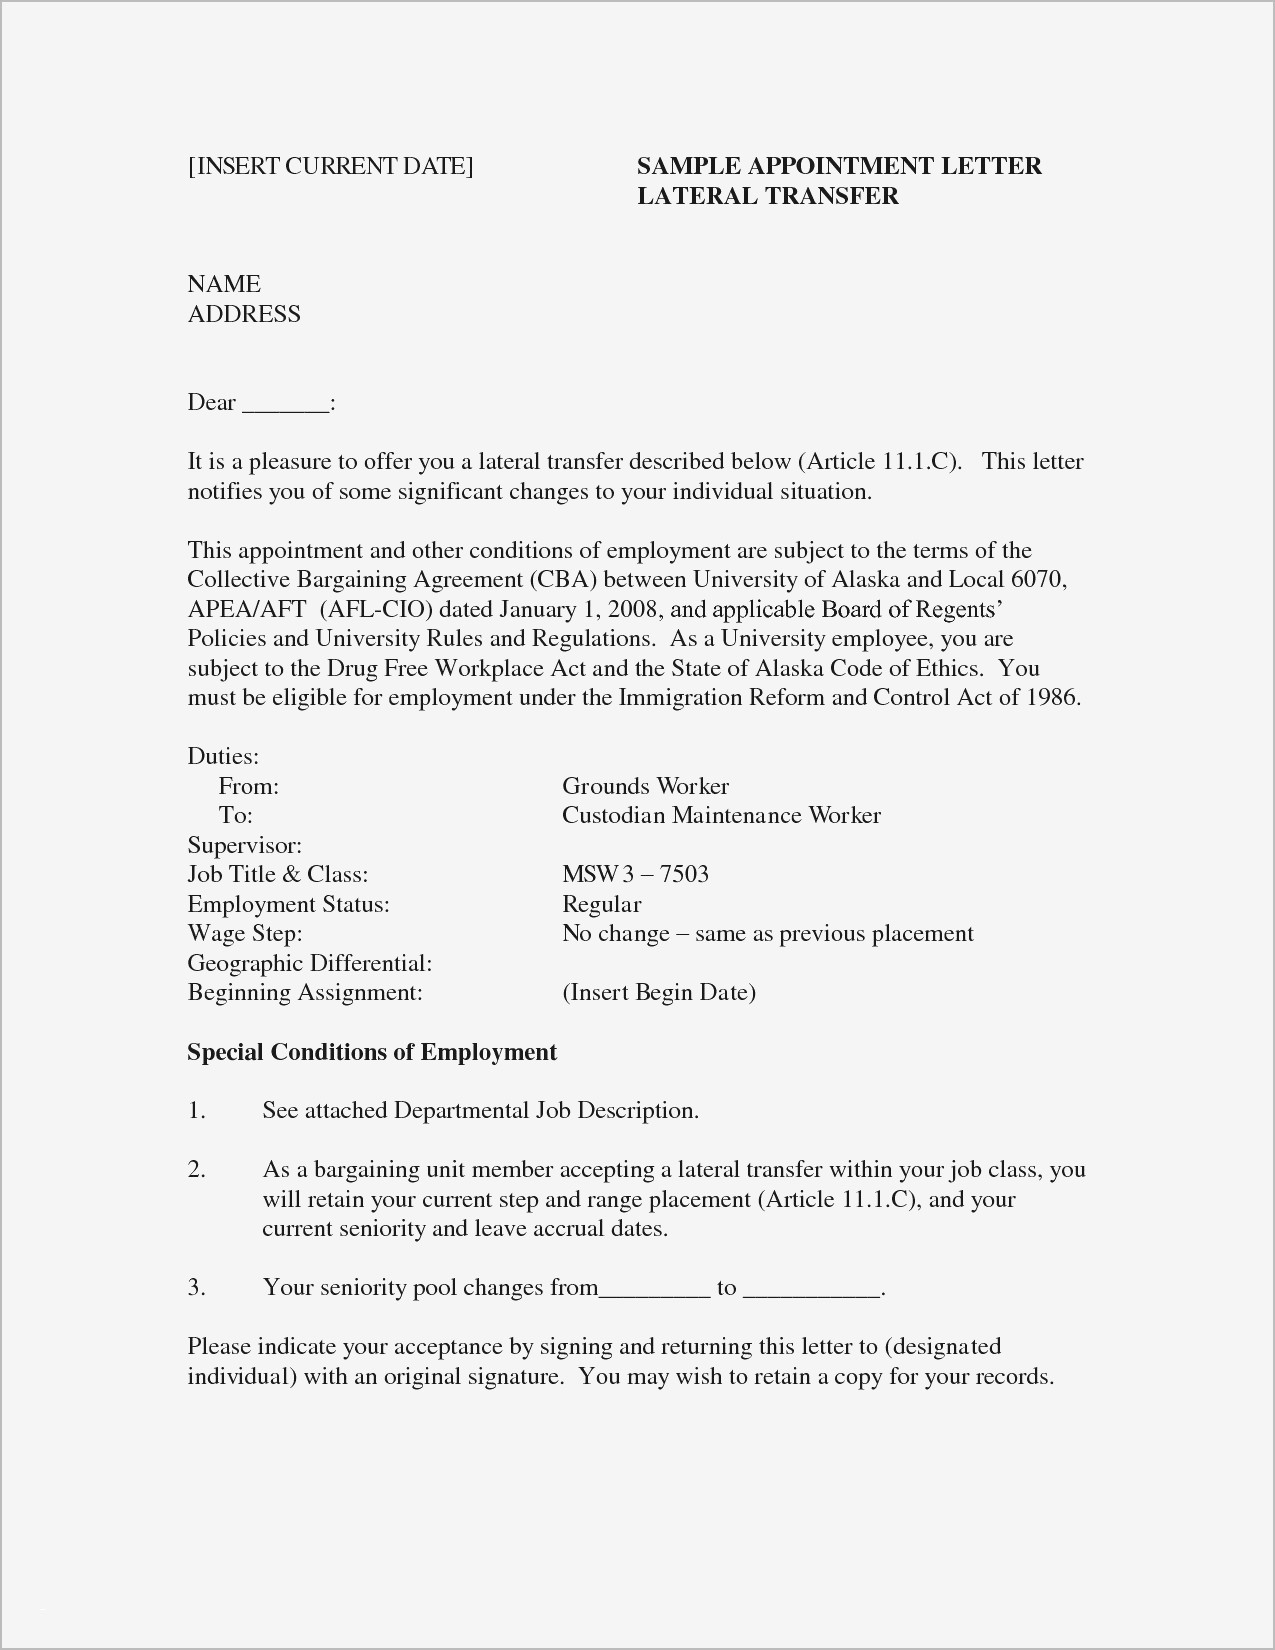 Good Resume Layout - Resume format for Jobs Best Resume Outlines Fresh Job Resume